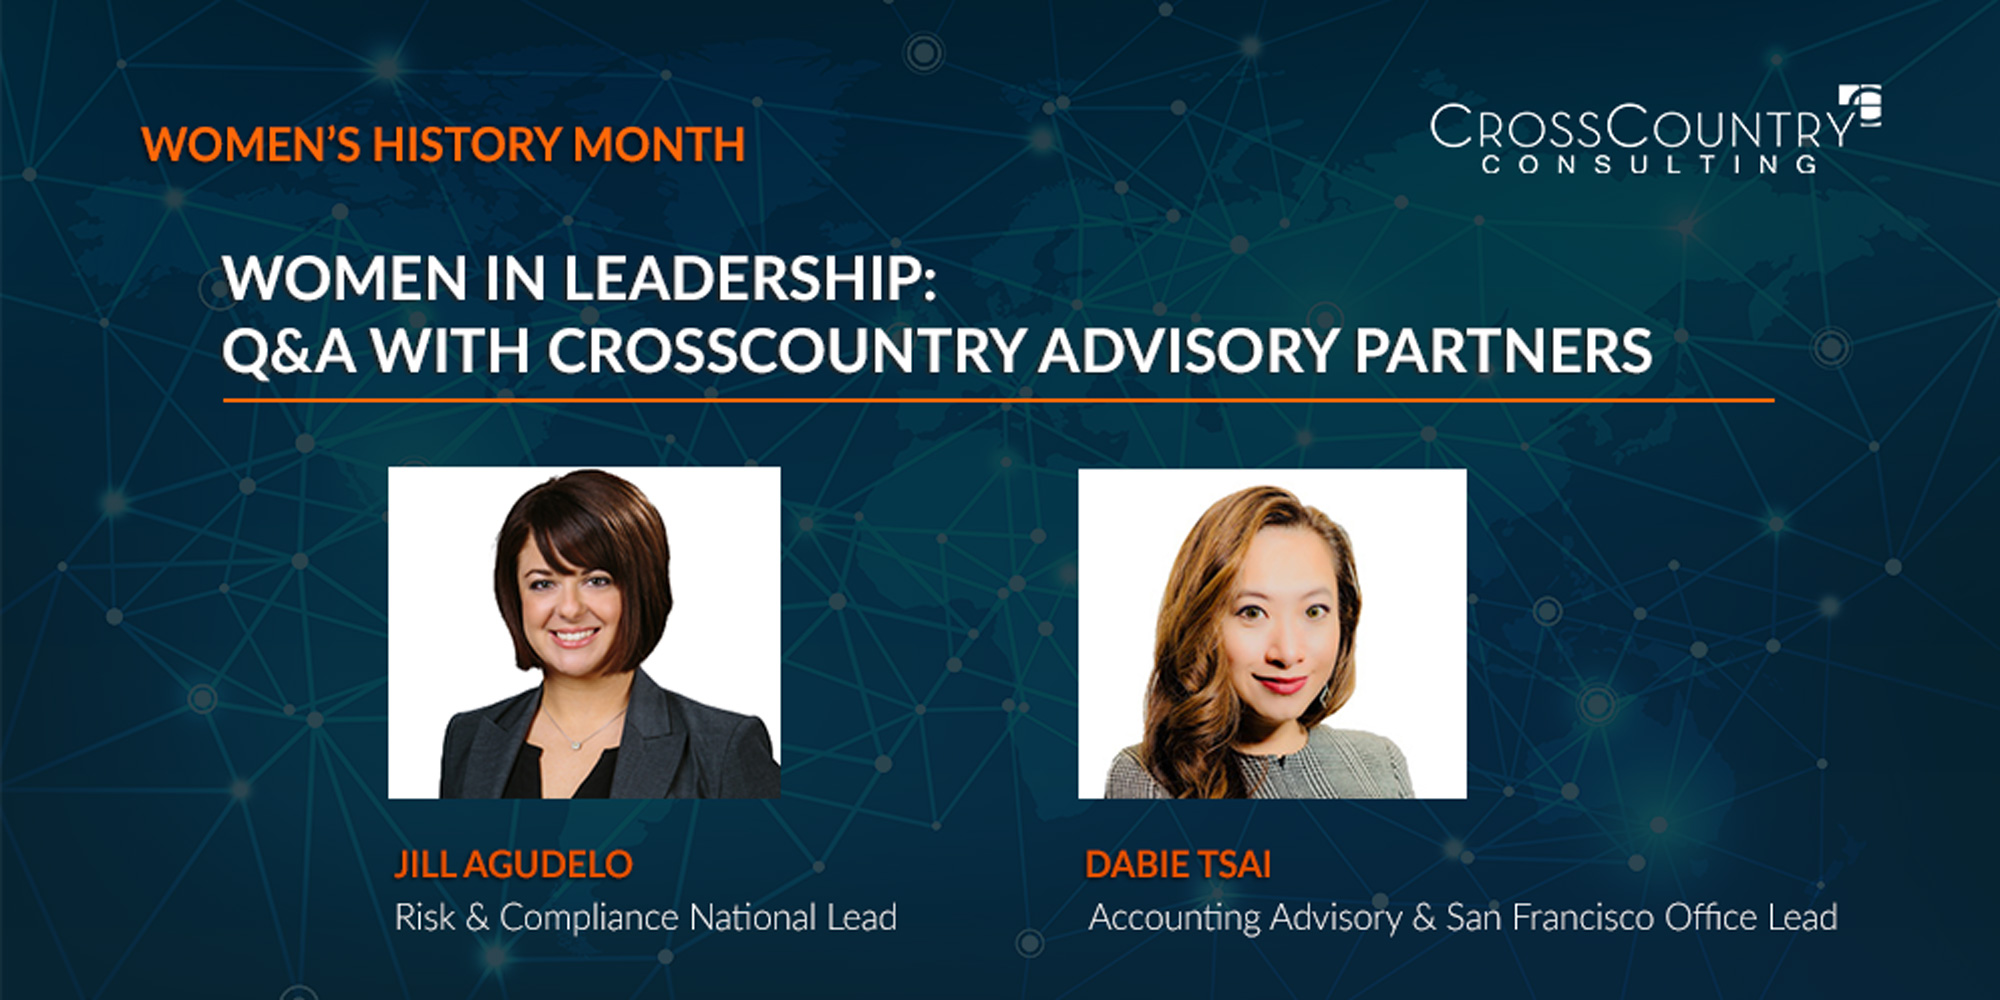 Women in Leadership: Q&A with CrossCountry Advisory Partners